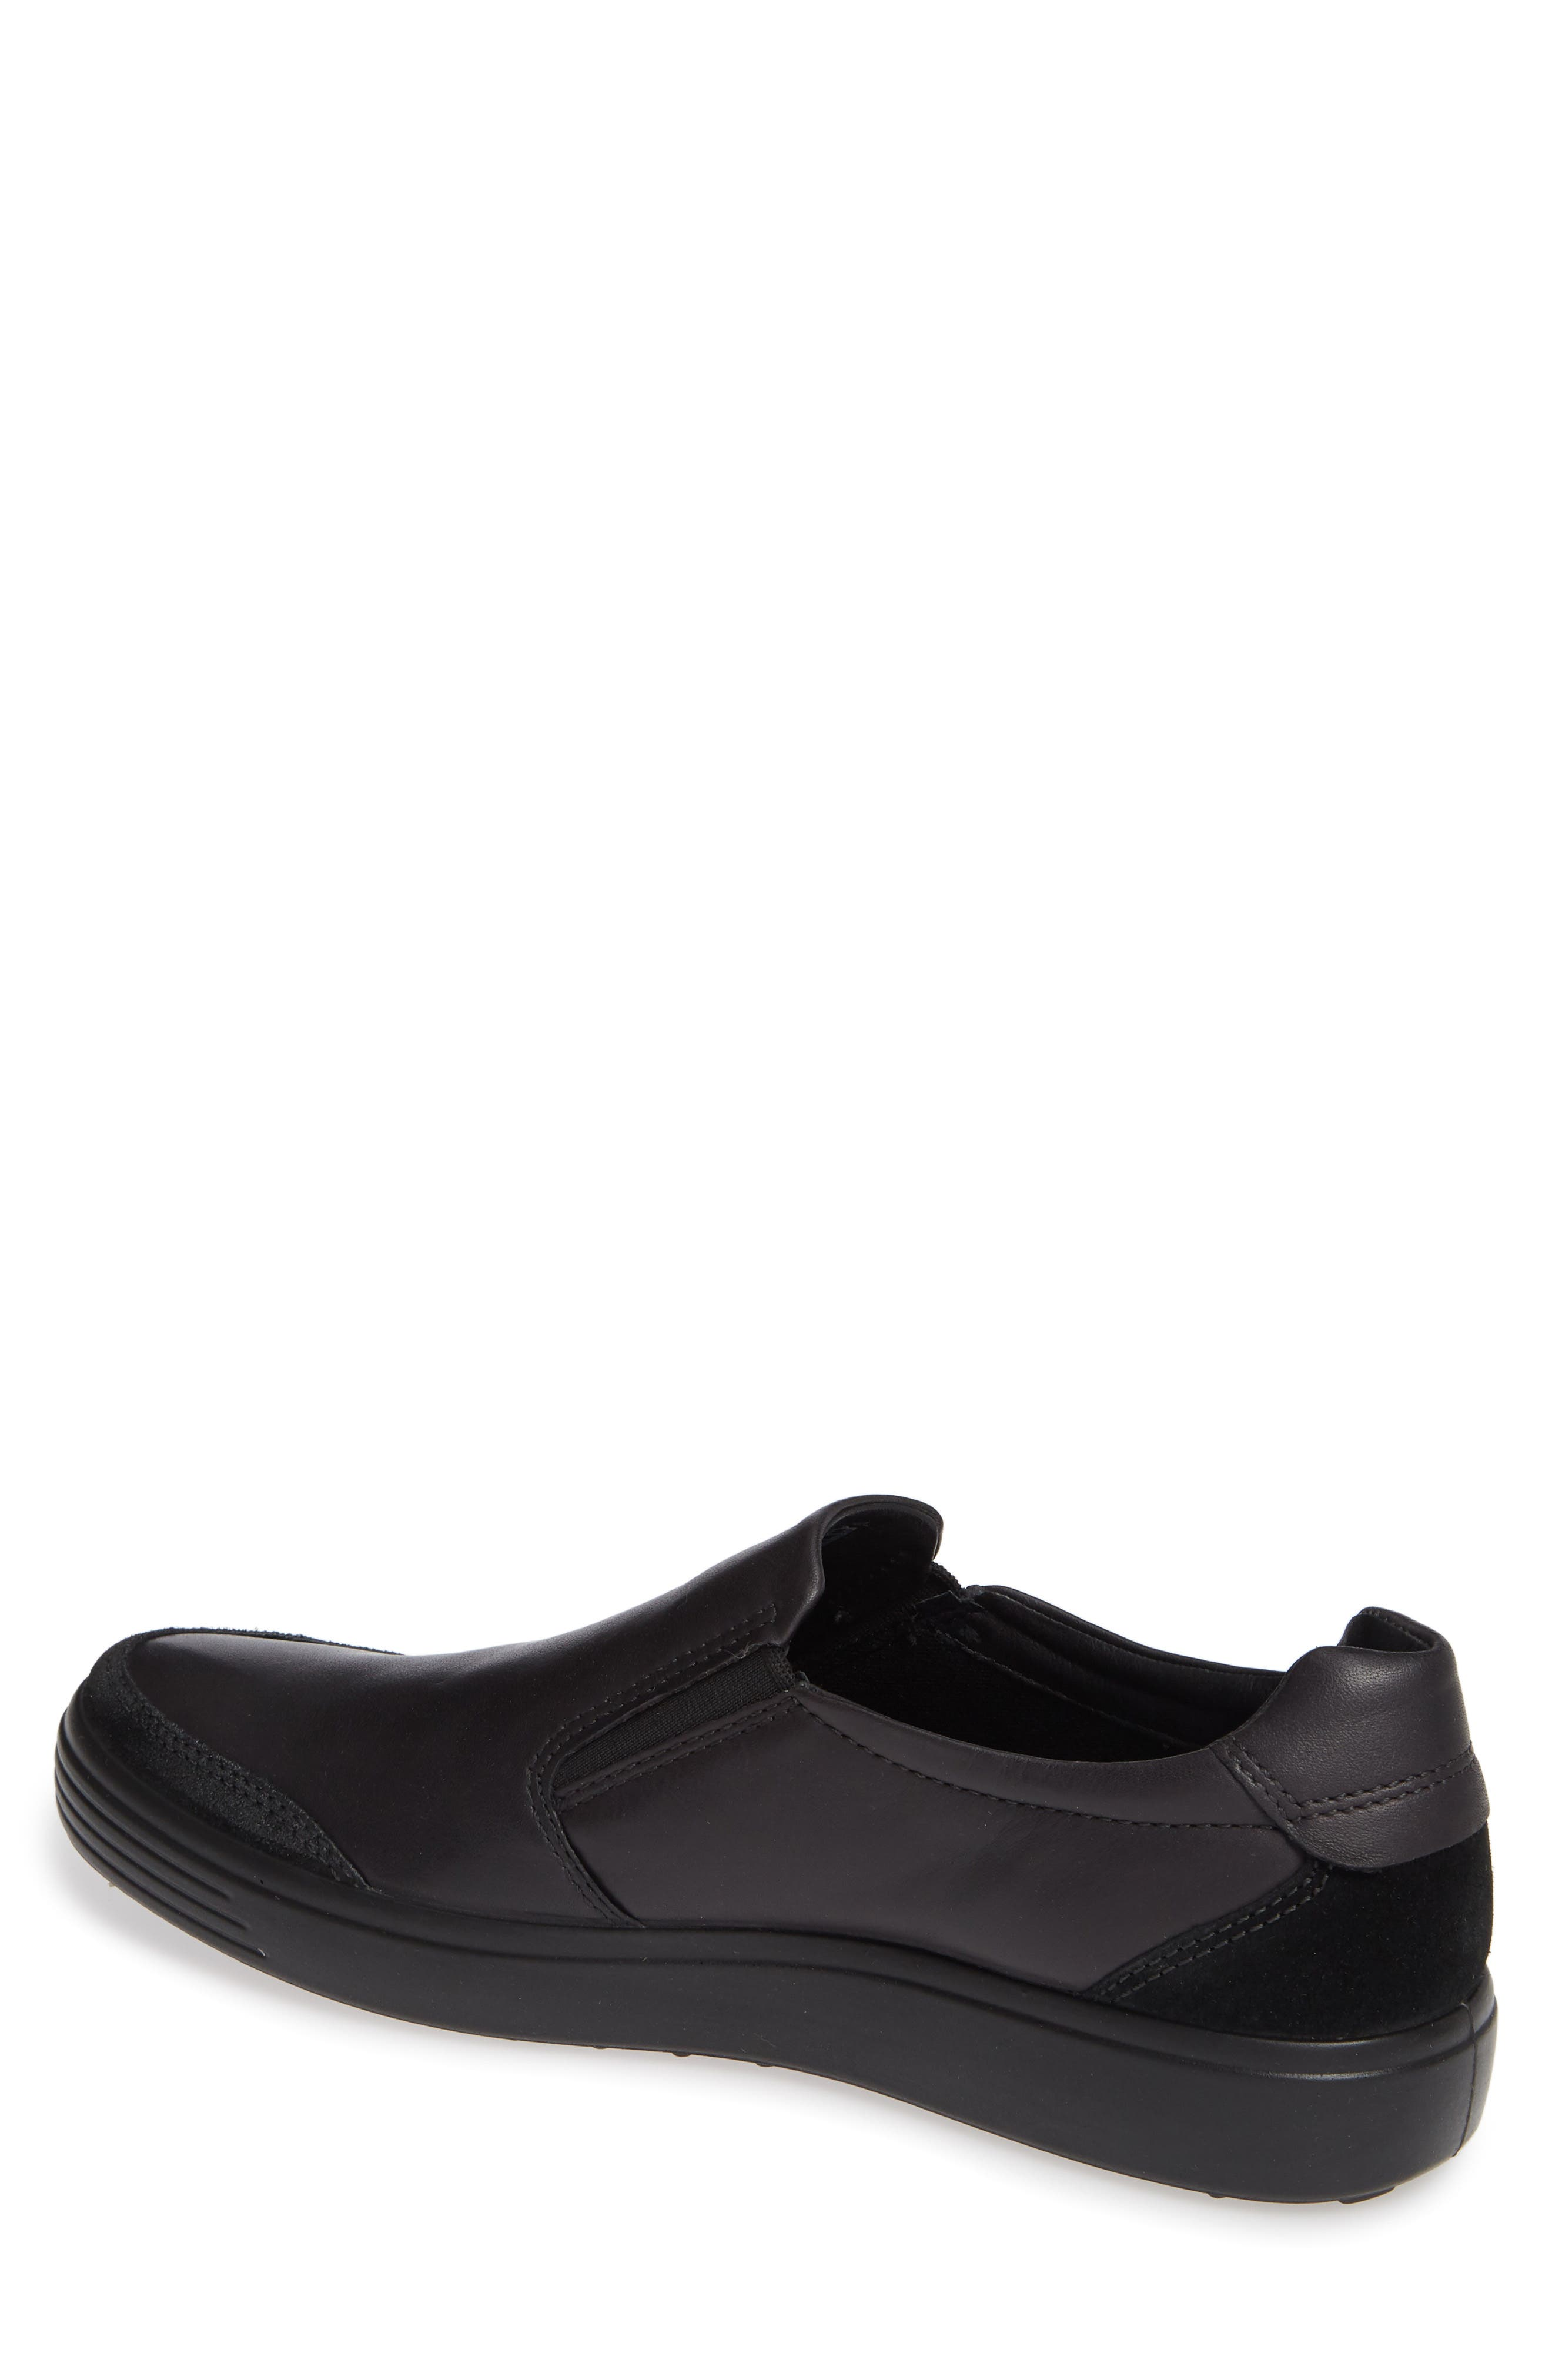 ECCO, Soft 7 Relaxed Slip-On, Alternate thumbnail 2, color, BLACK LEATHER